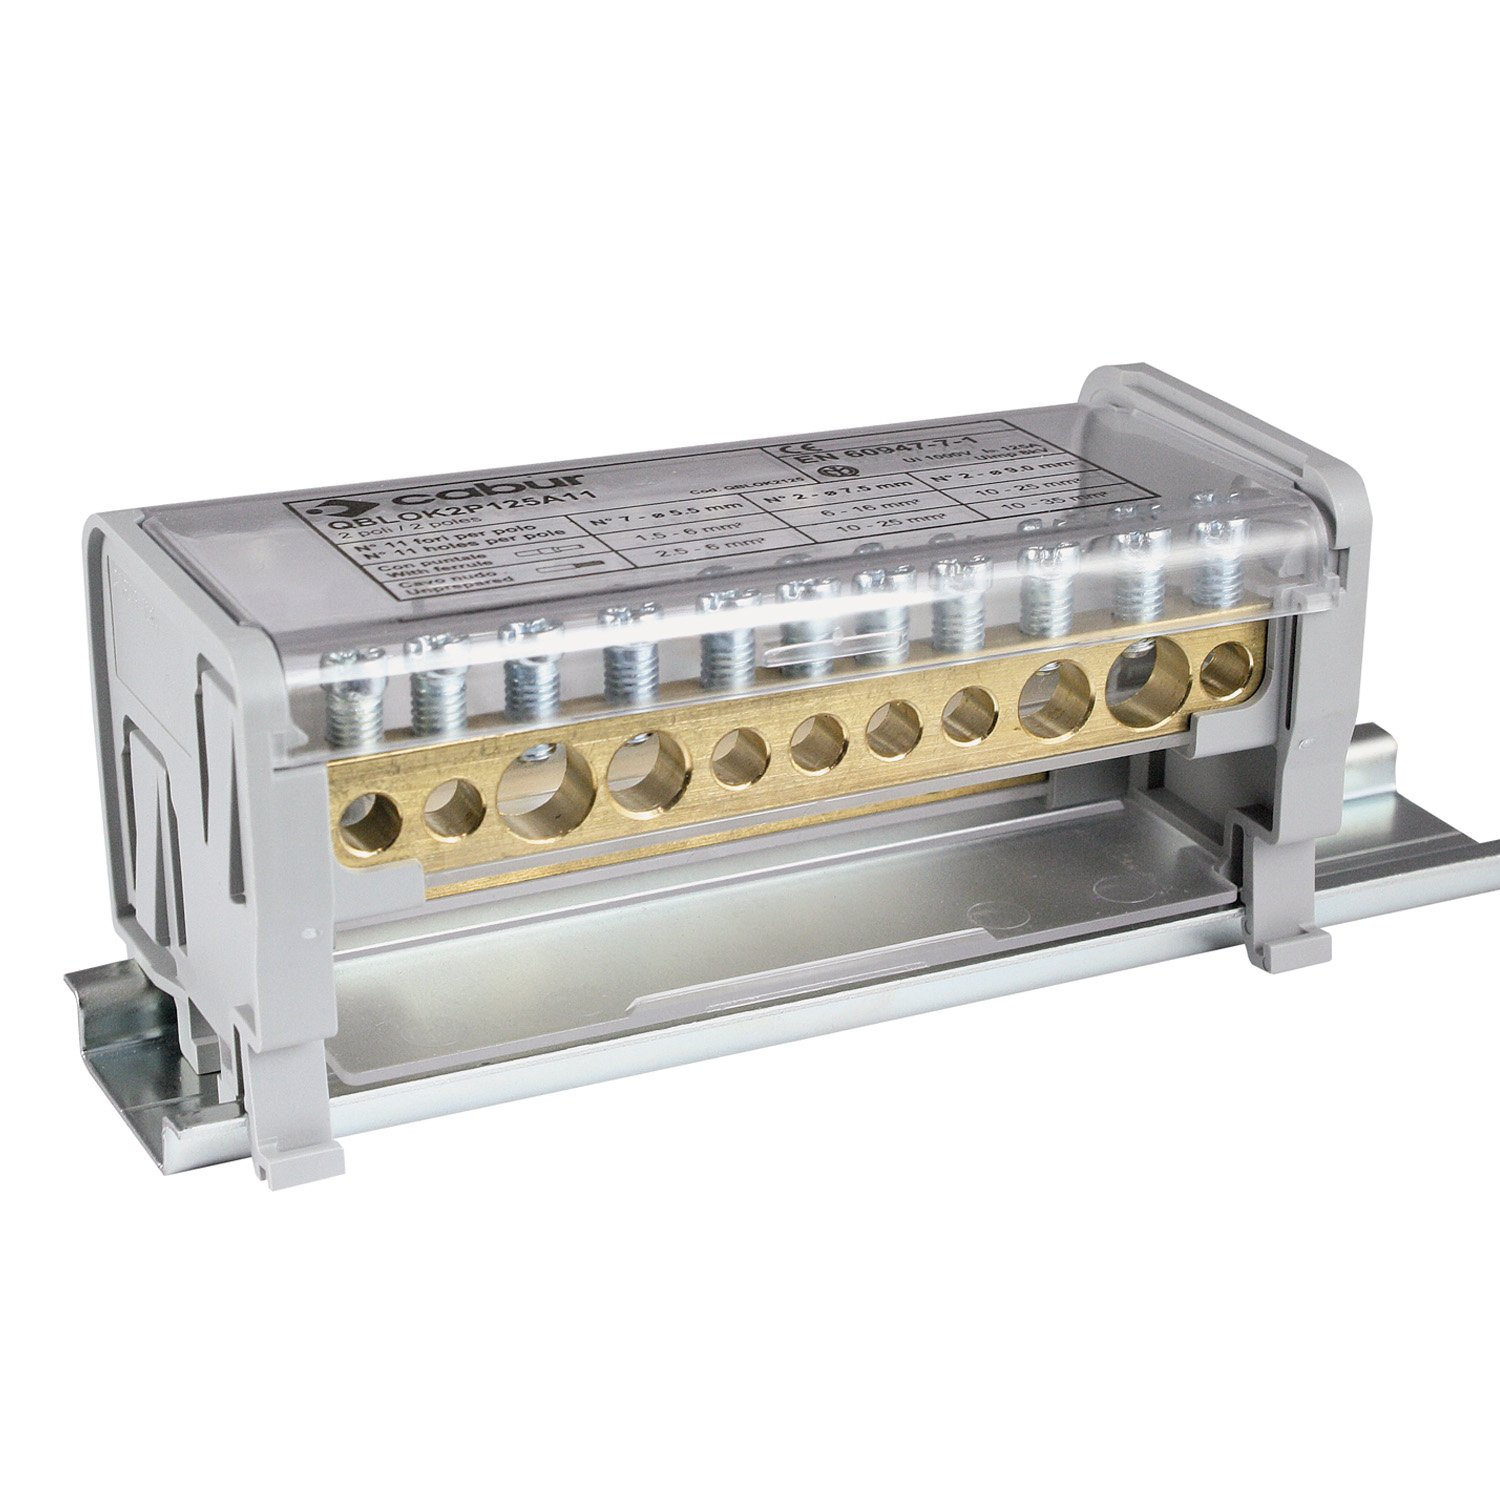 ASI QBLOK2125 Power Distribution Module, 2 Busbars, 125 Amp, 1000V, 11 Connections (Pack of 2)